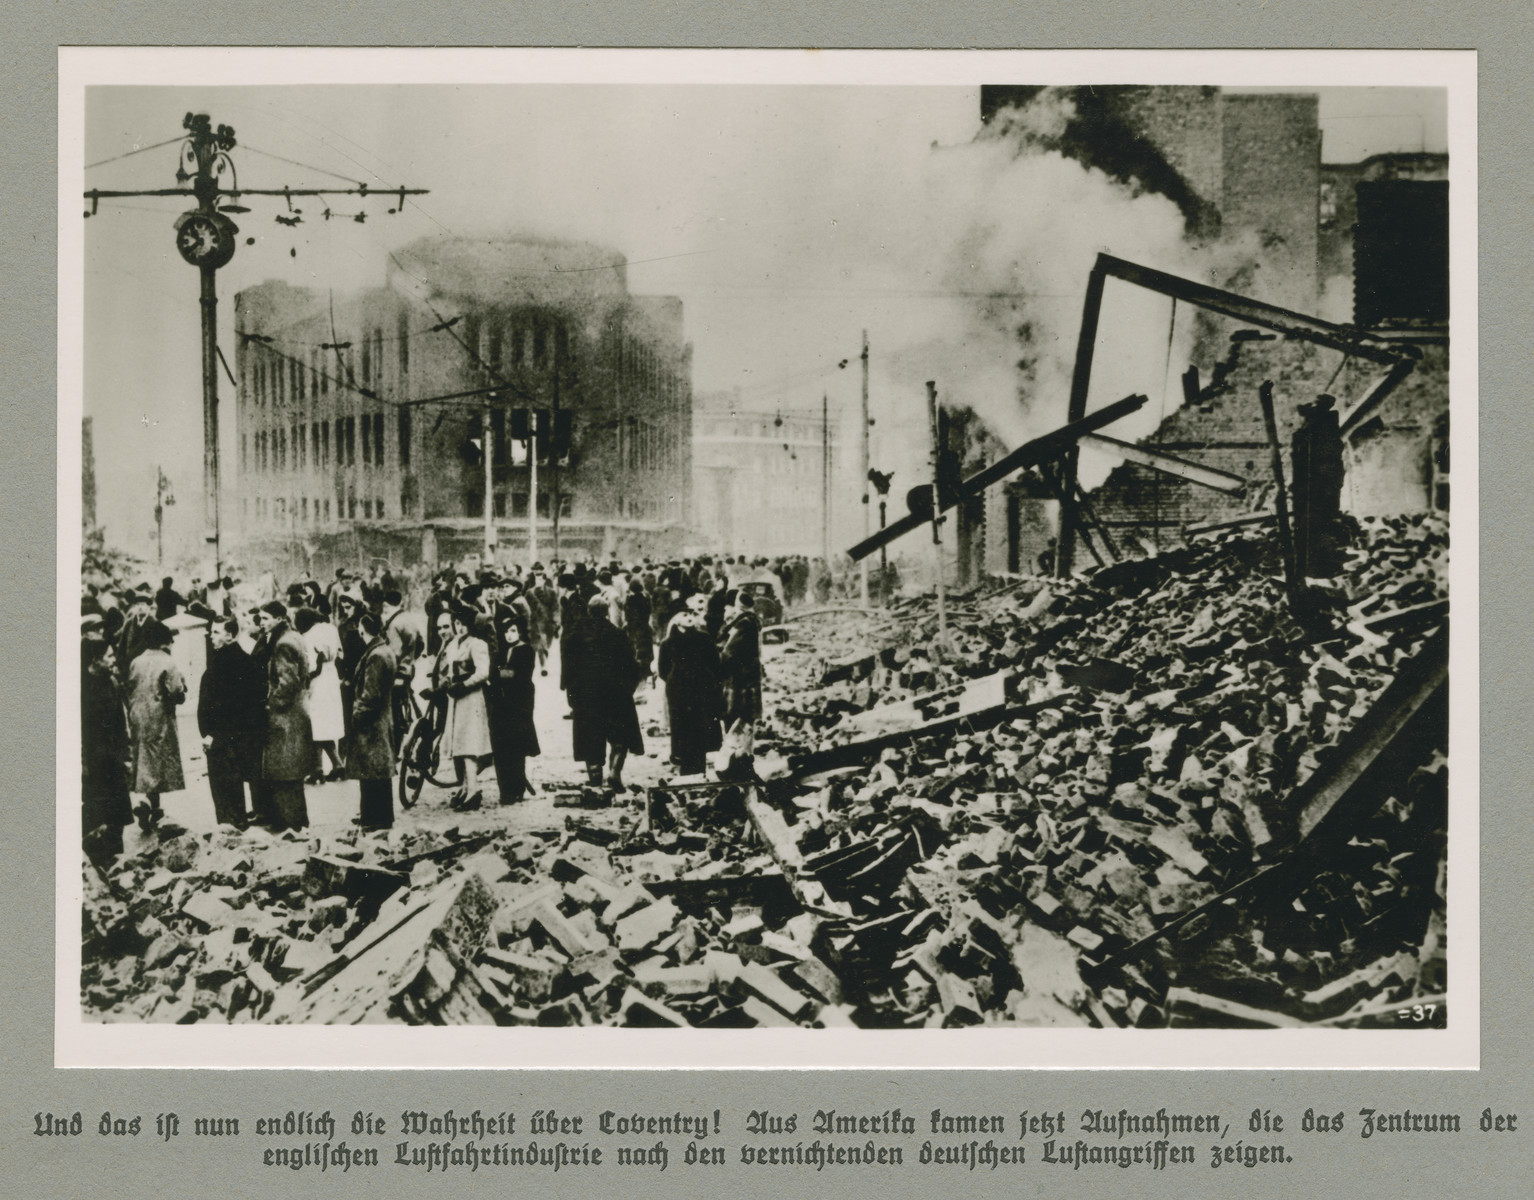 Men and women stand behind piles of rubble in a bombed out city quarter.   Original caption reads: And finally the truth about Coventry! Images have come out of America that depict the center of the English aircraft industry after the devastating German airstrikes.